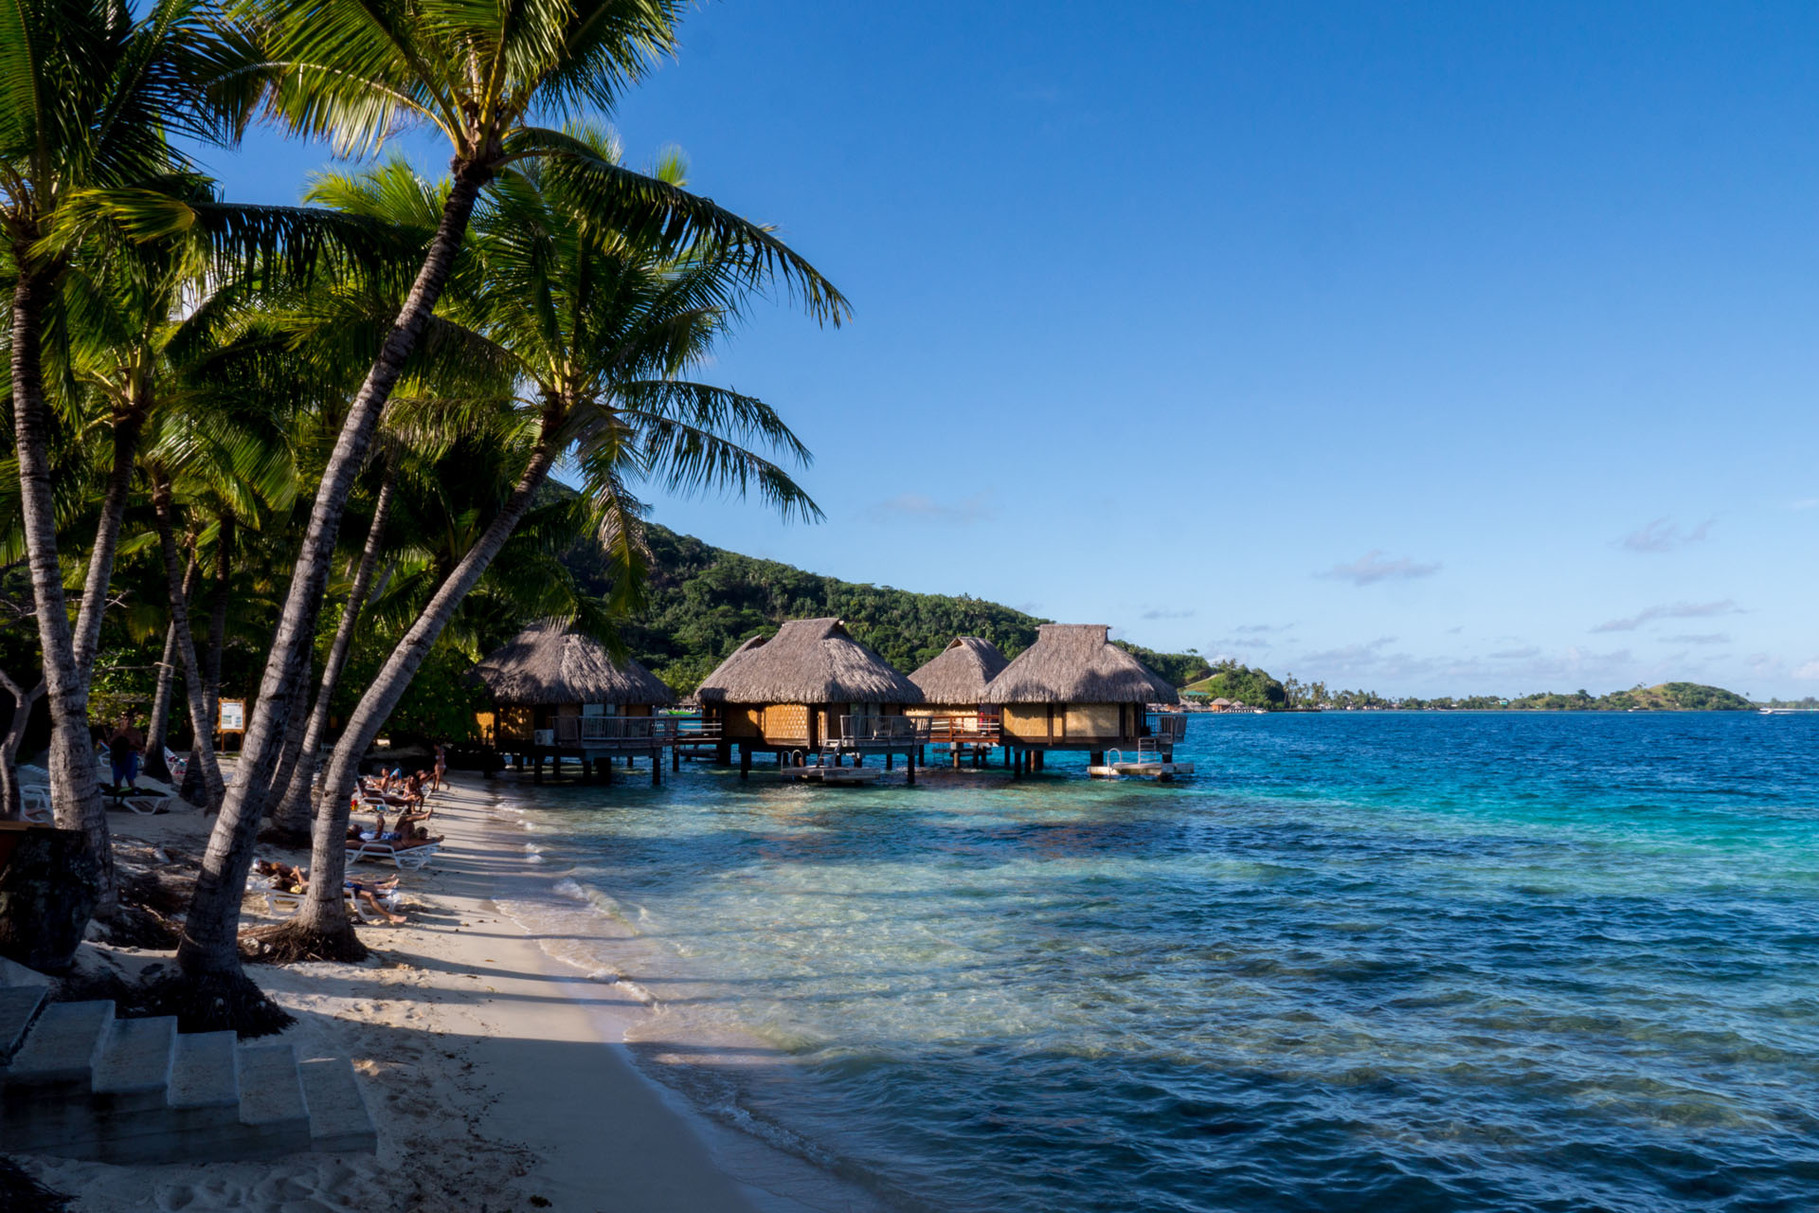 Typical bungalows at Bora Bora